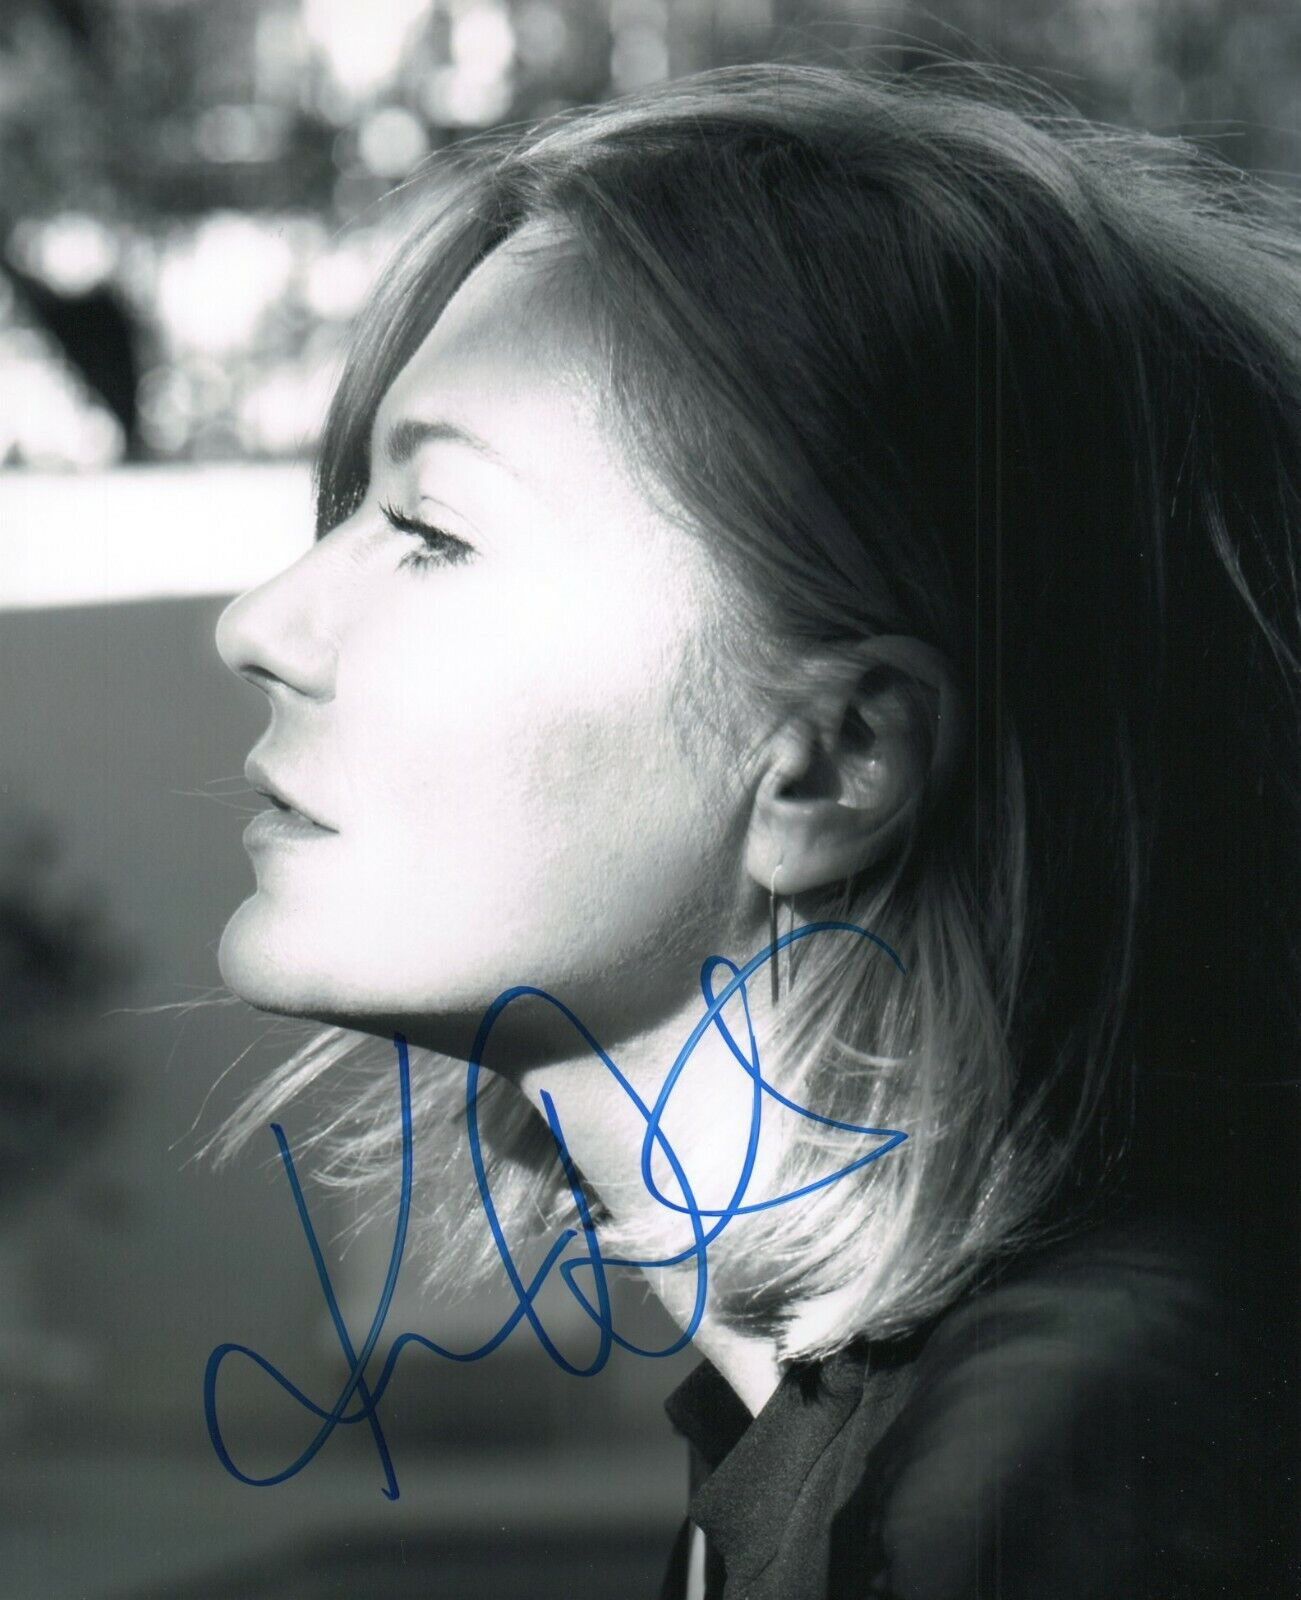 Autographed Kirsten Dunst Signed 8 X 10 Photo Cute - $4.99